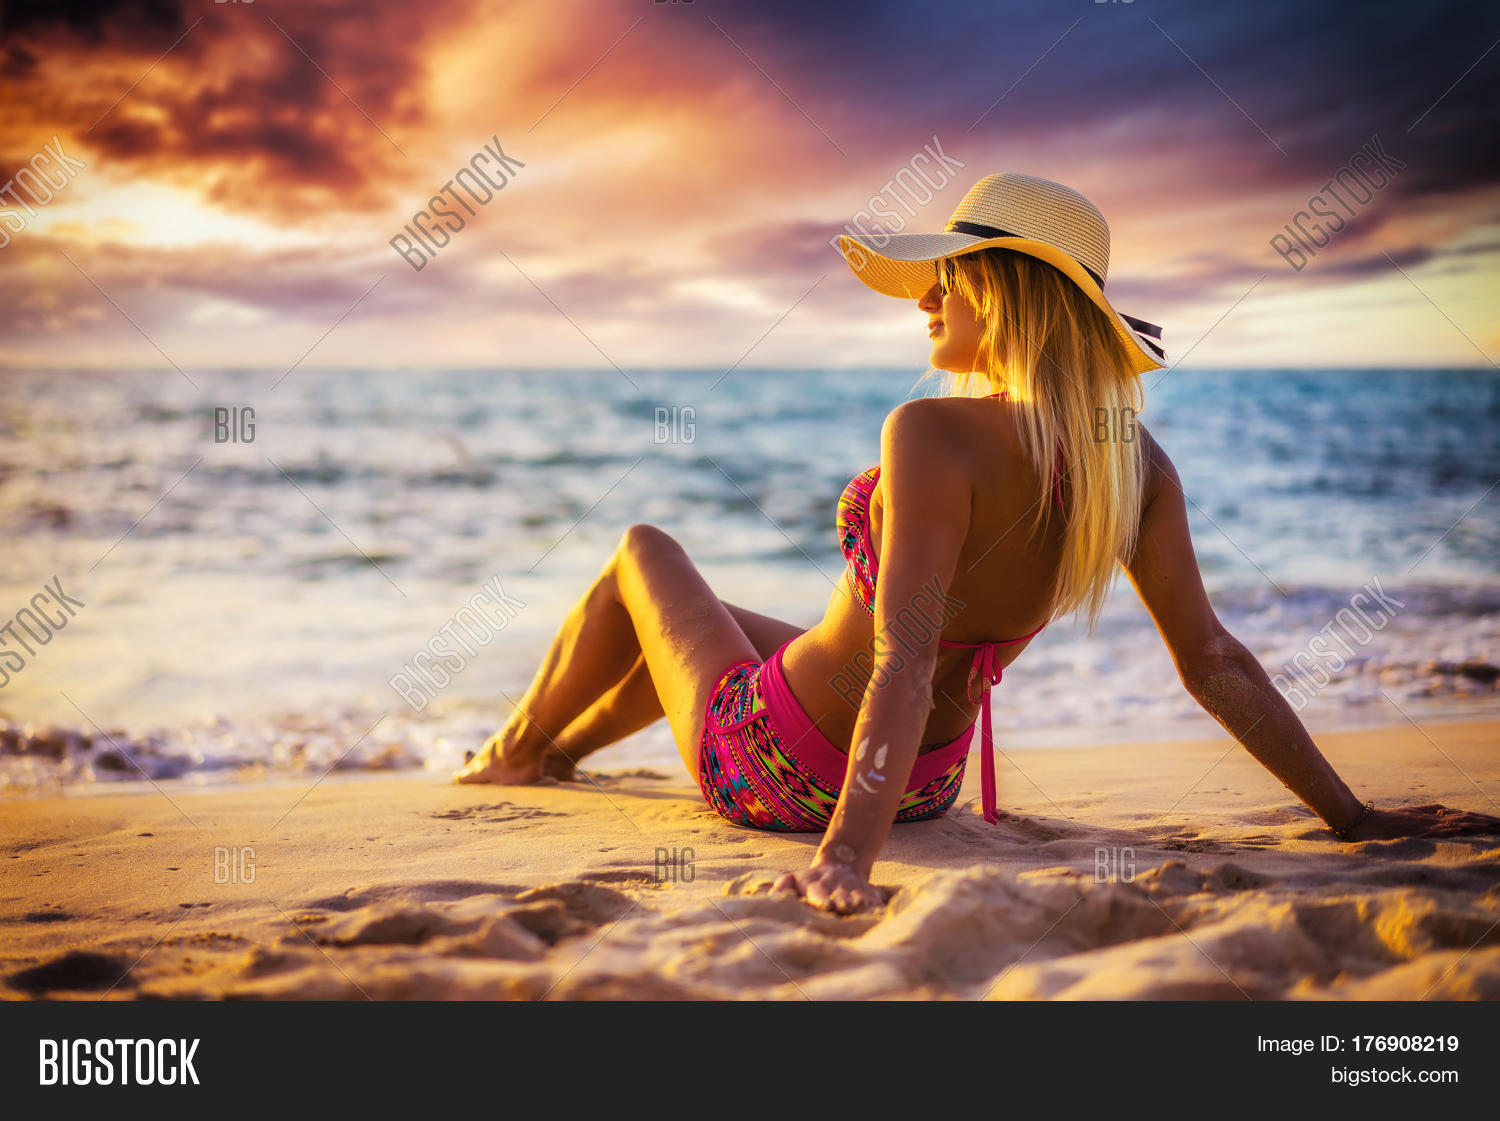 sunset beach hindu single women Free sunset beach personals dating site for people living in sunset beach, north carolina.